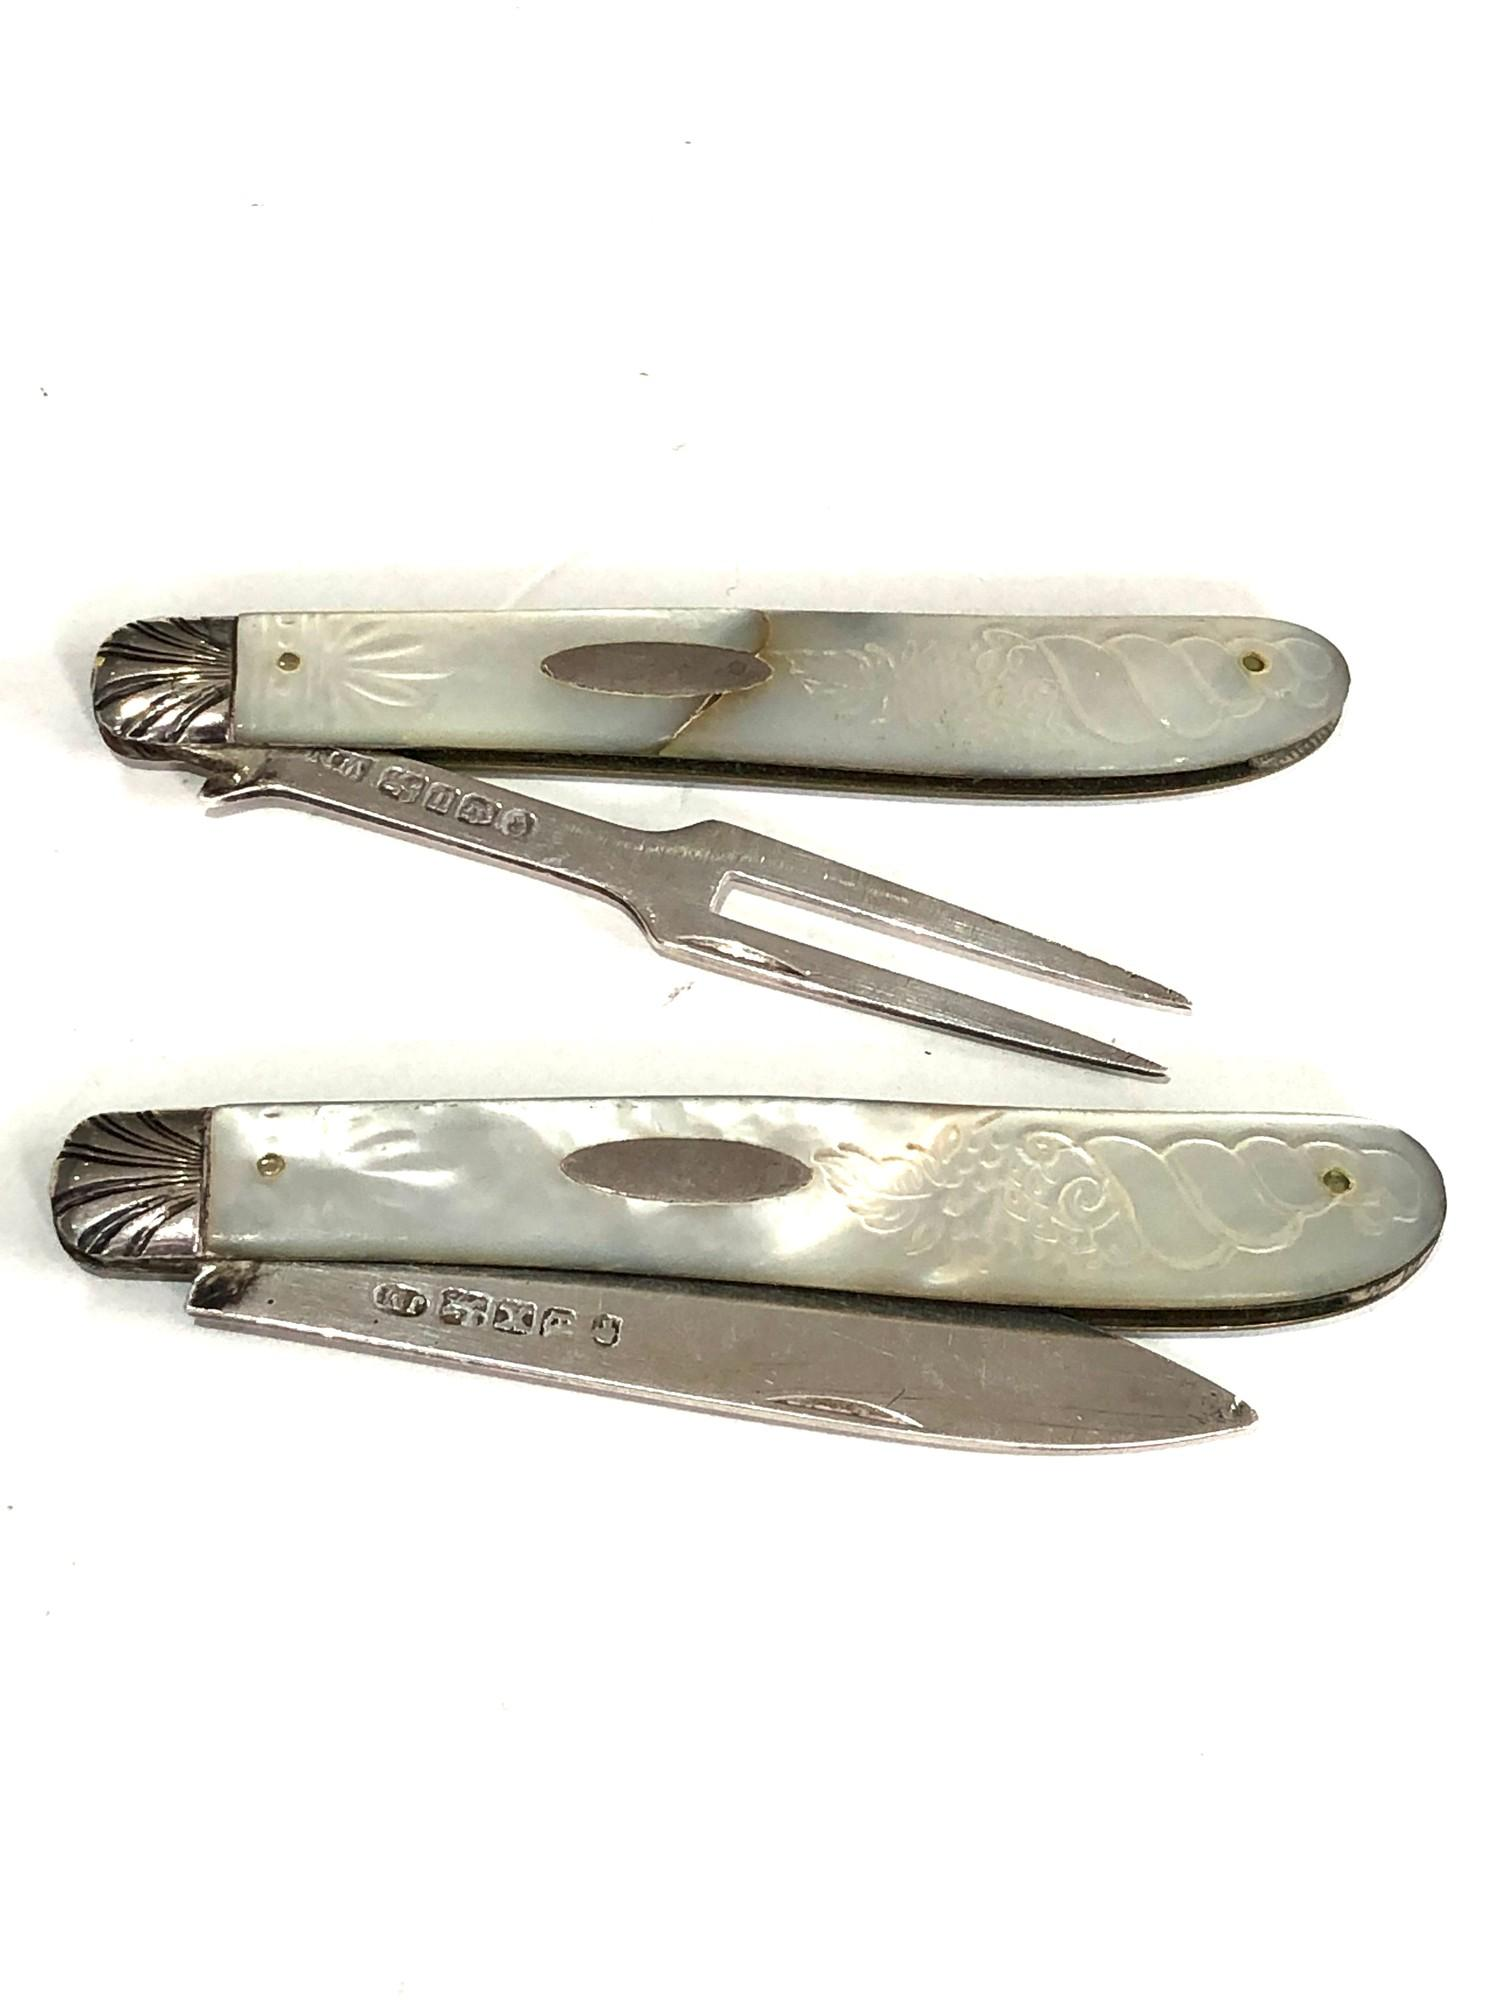 Antique silver & mop knife and fork both have victorian silver hallmarks matching mop handles with